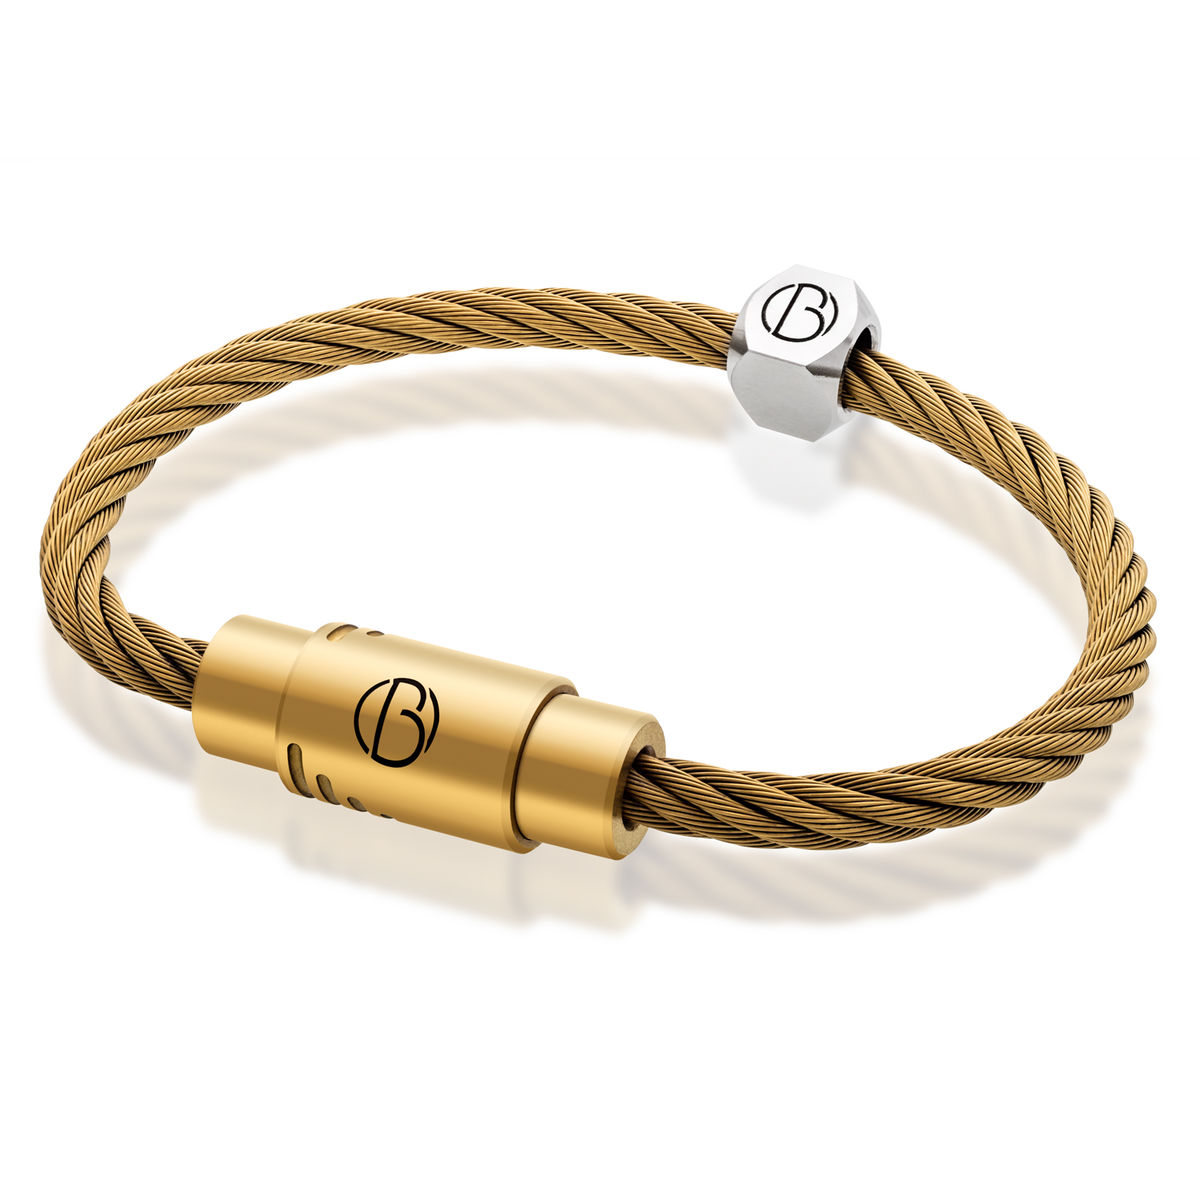 STAINLESS STEEL BRACELET: Matt Gold